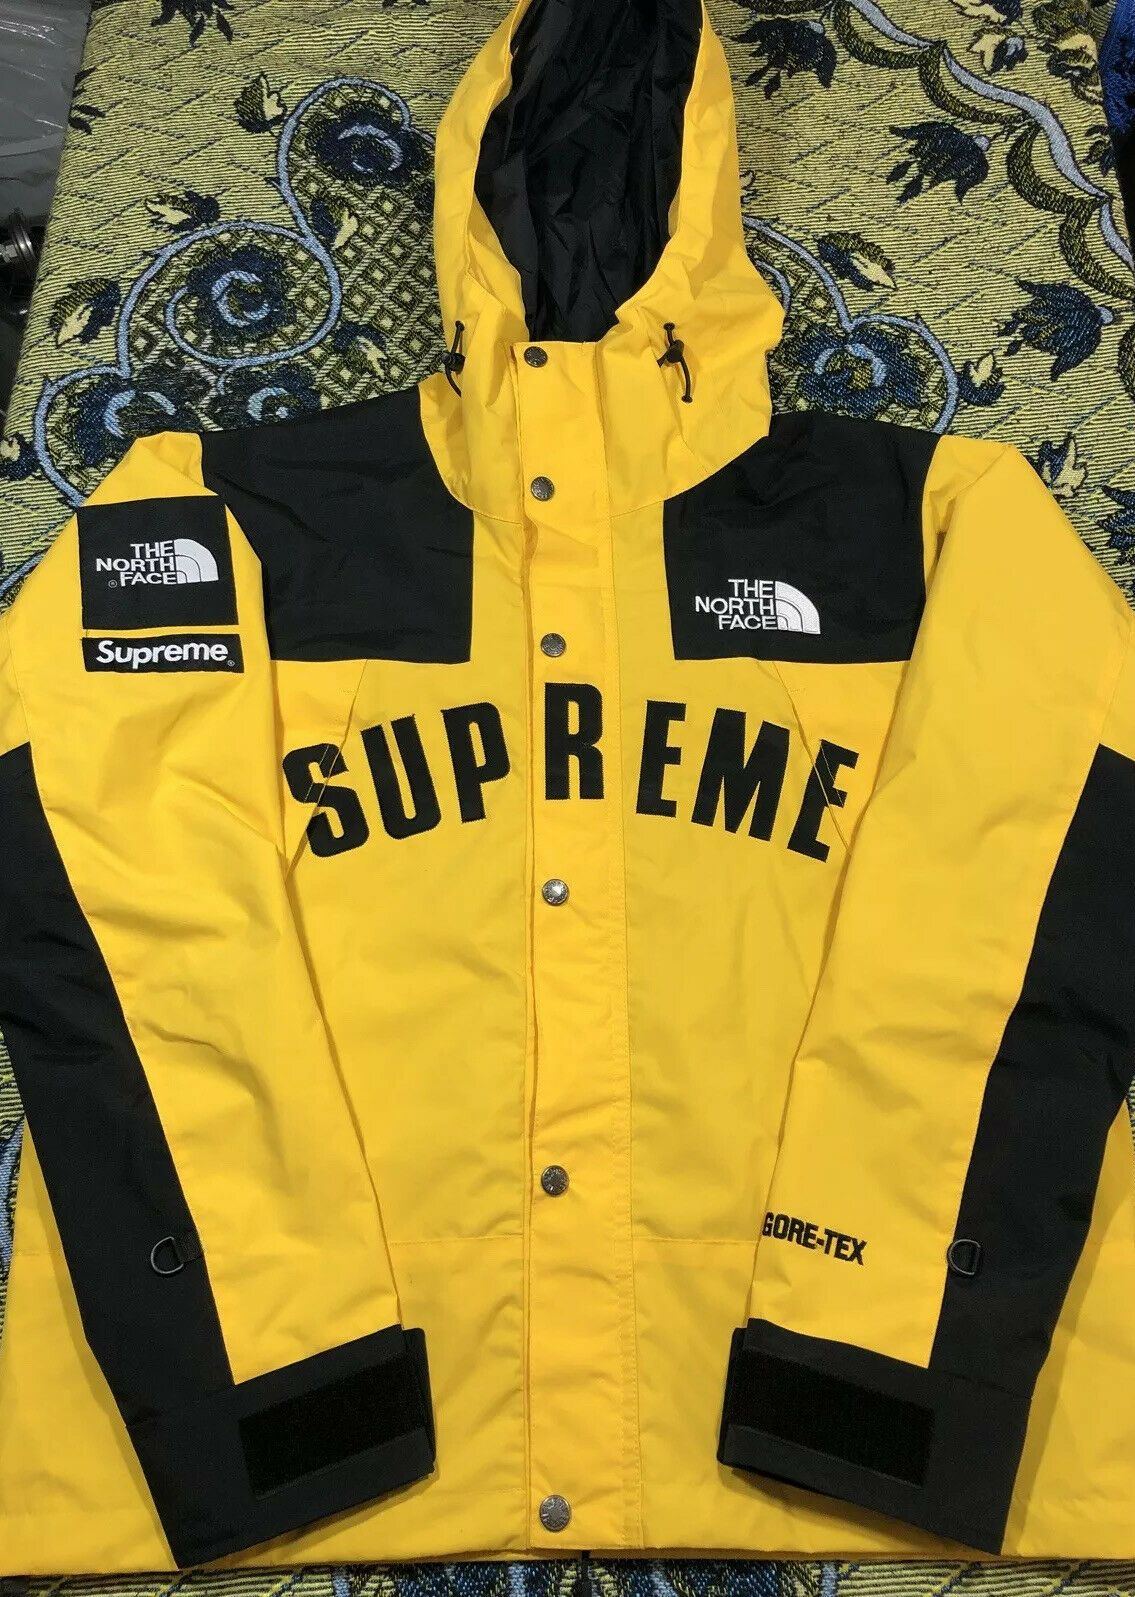 The North Face X Supreme Gortex Jacket Yellow Sz Small Deadstock Sold Out Rare Ideas Of The North Face Thenorthface Ropa [ 1597 x 1135 Pixel ]